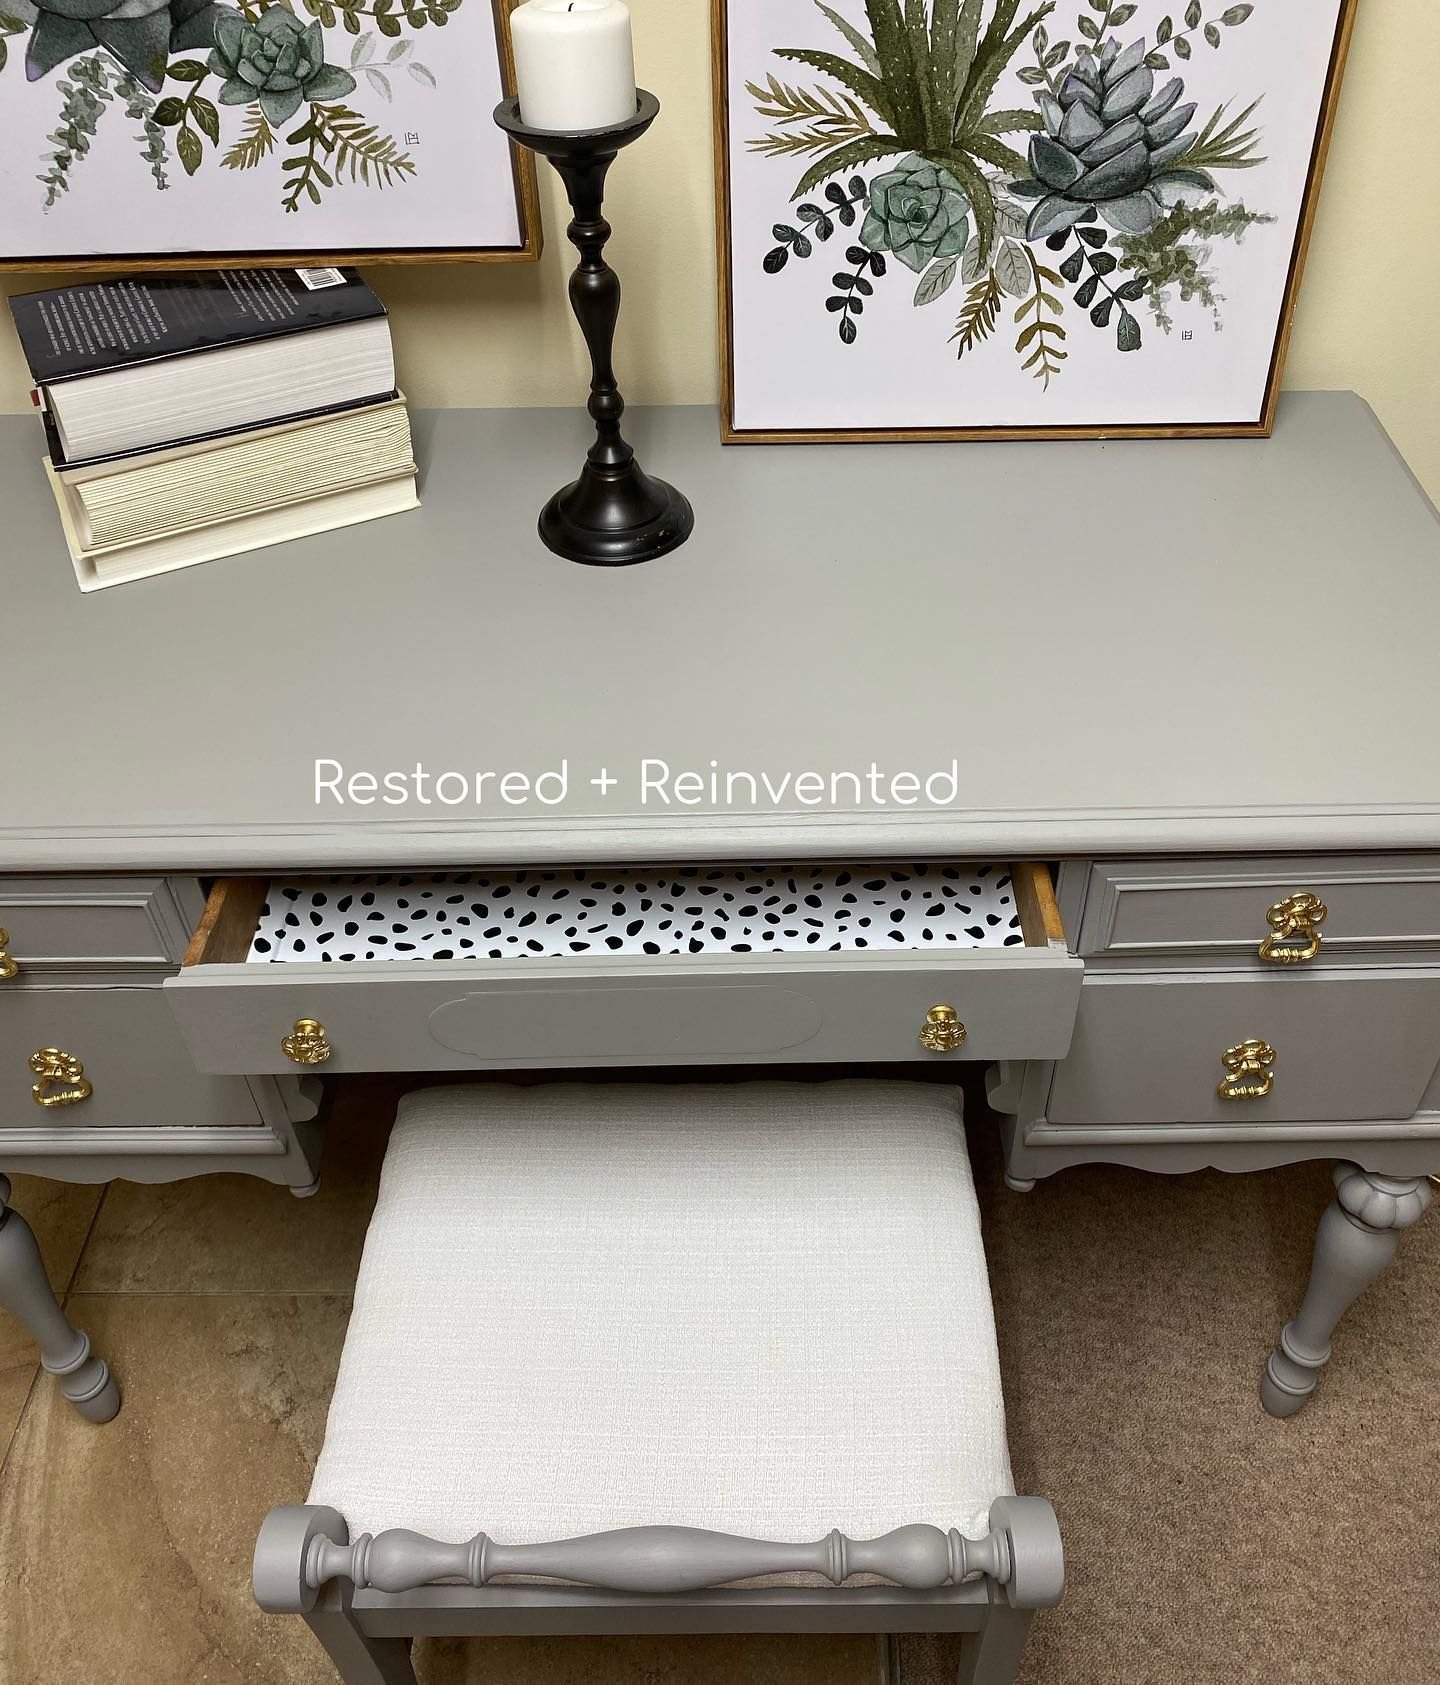 [A v a i l a b l e] This beauty came to me from an estate sale of a lady who was 65 and has had this dressing table since she was a little girl. Absolutely adored giving this table it's life back. . . #furnituremakeover #furniture #furnitireartisan #furnitureart #furniturerestoration #refinishedfurniture #chalkpaint #chalkpainted #chalkpaintedfurniture #paintitbeautiful #refinished #paintedfurniture #upcycle #upcycledfurniture #vintage #antique #antiquefurniture #vintagefurniture